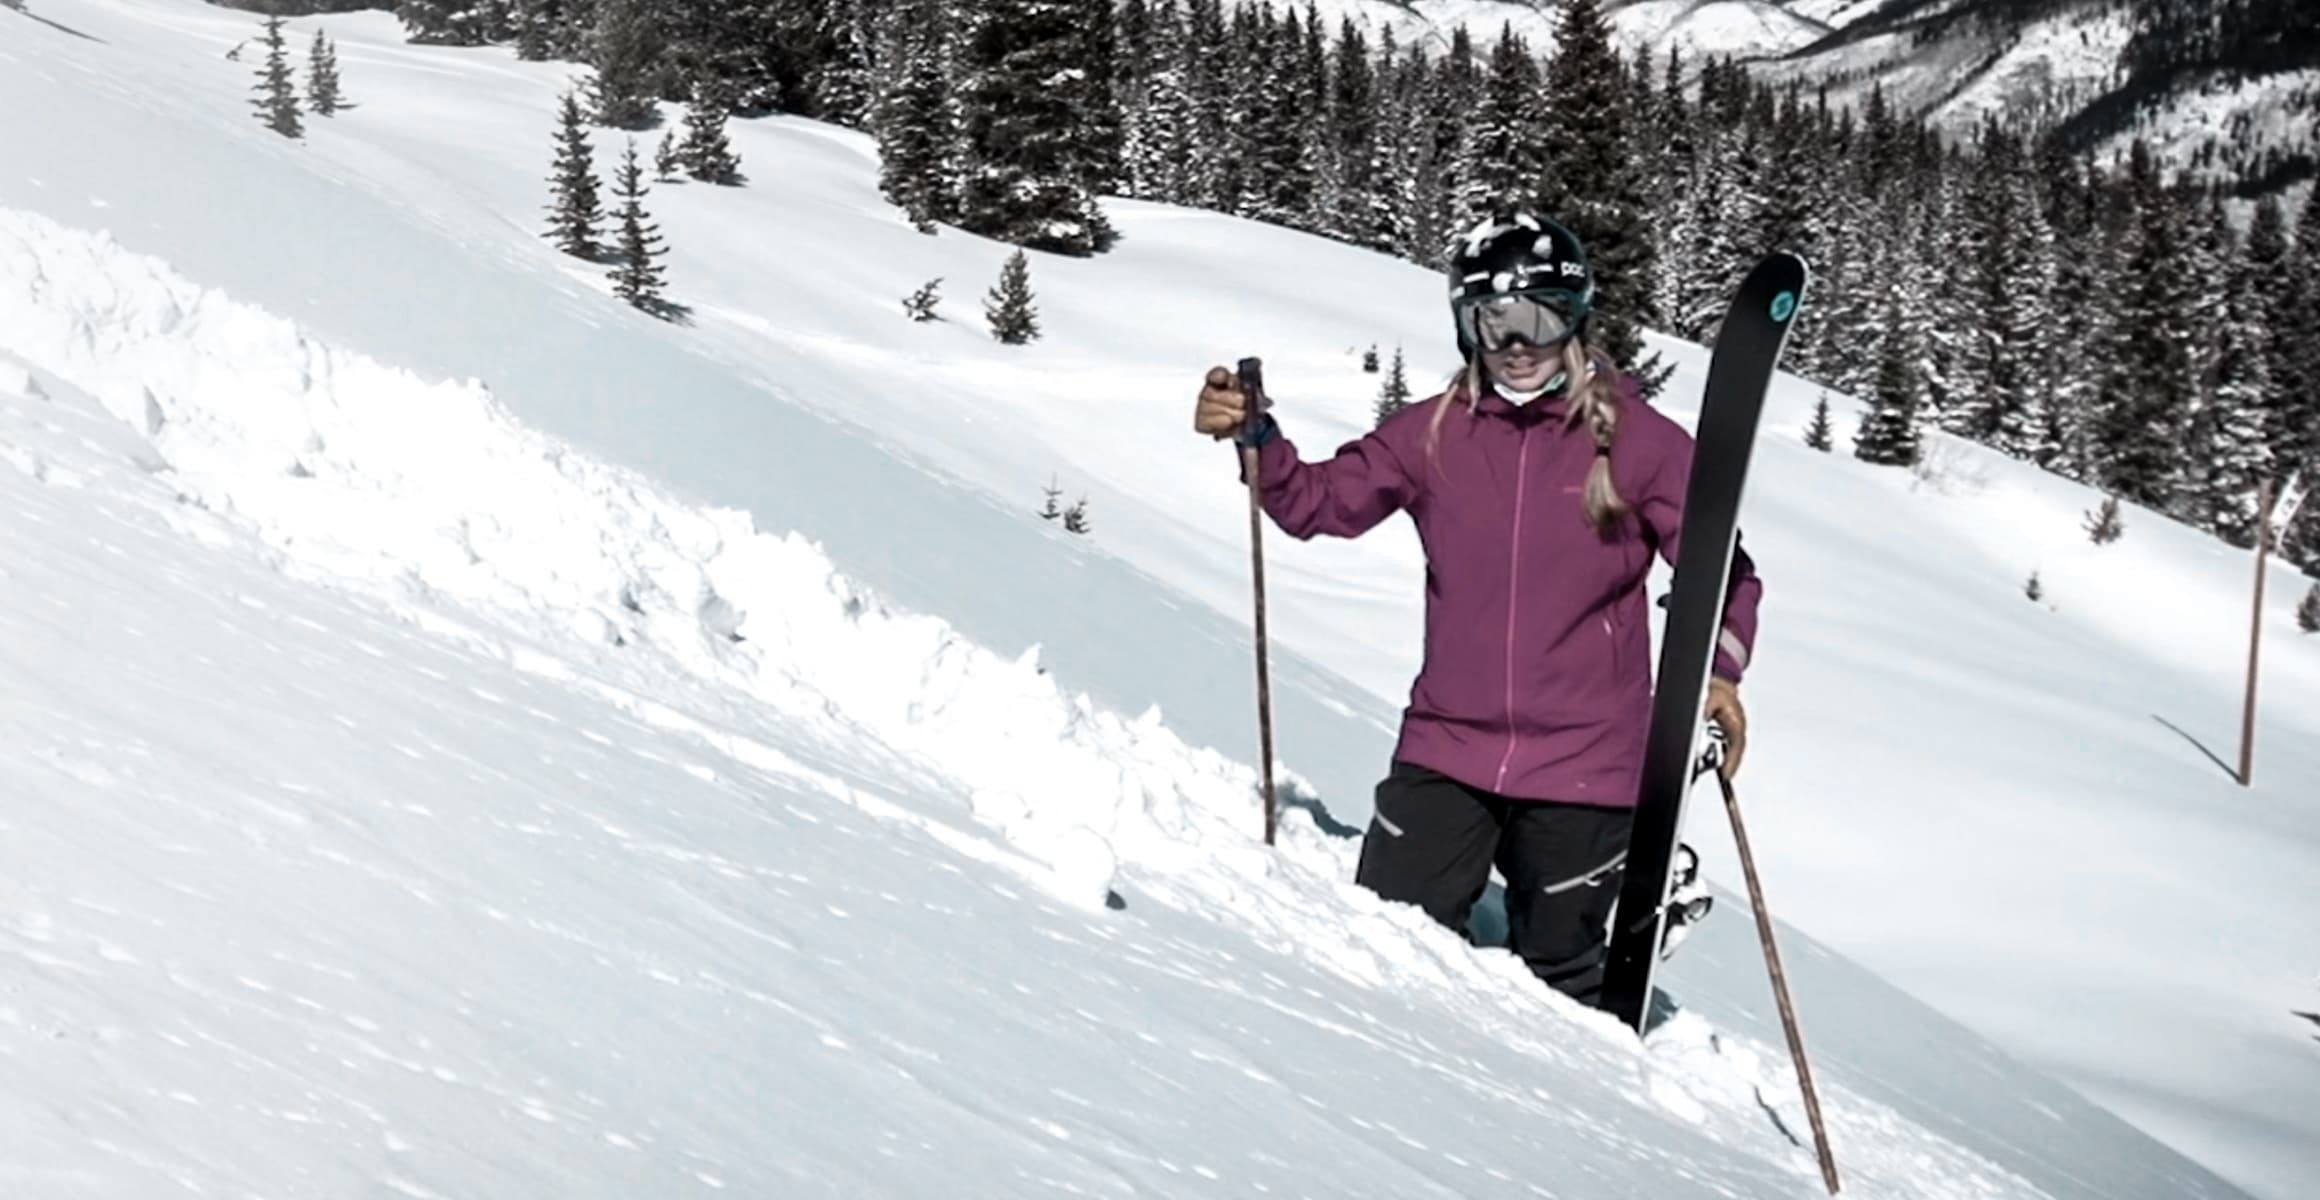 FINDING A LOST SKI IN DEEP SNOW